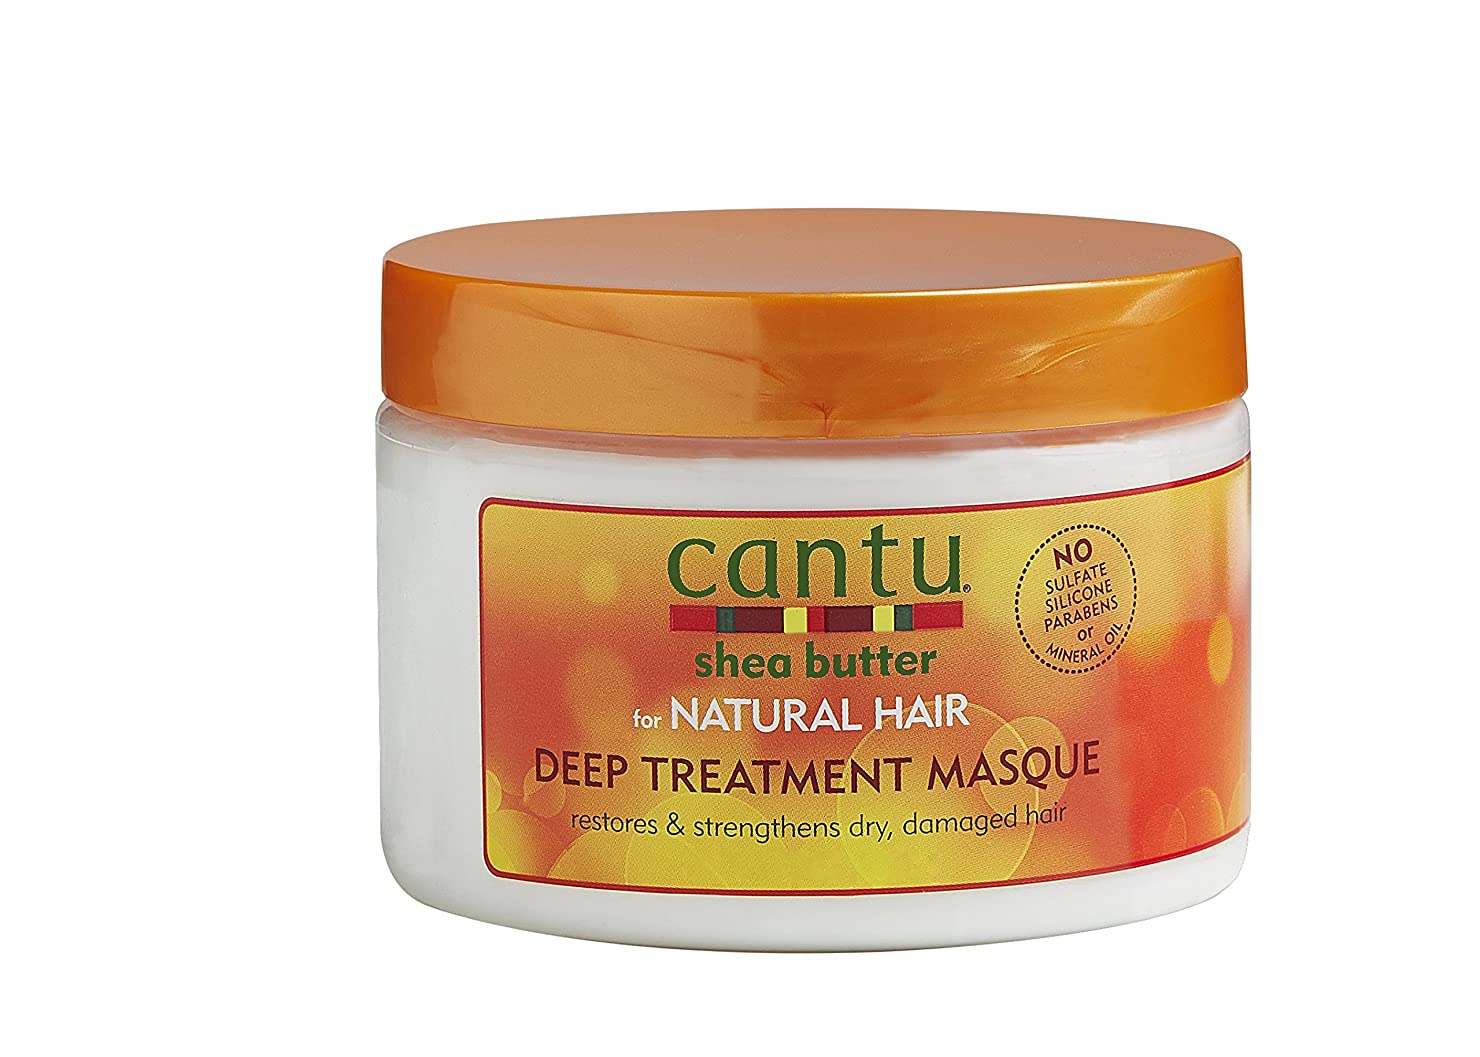 通行料金投げる櫛Cantu Shea Butter Natural Deep Masque 12 oz. by Cantu